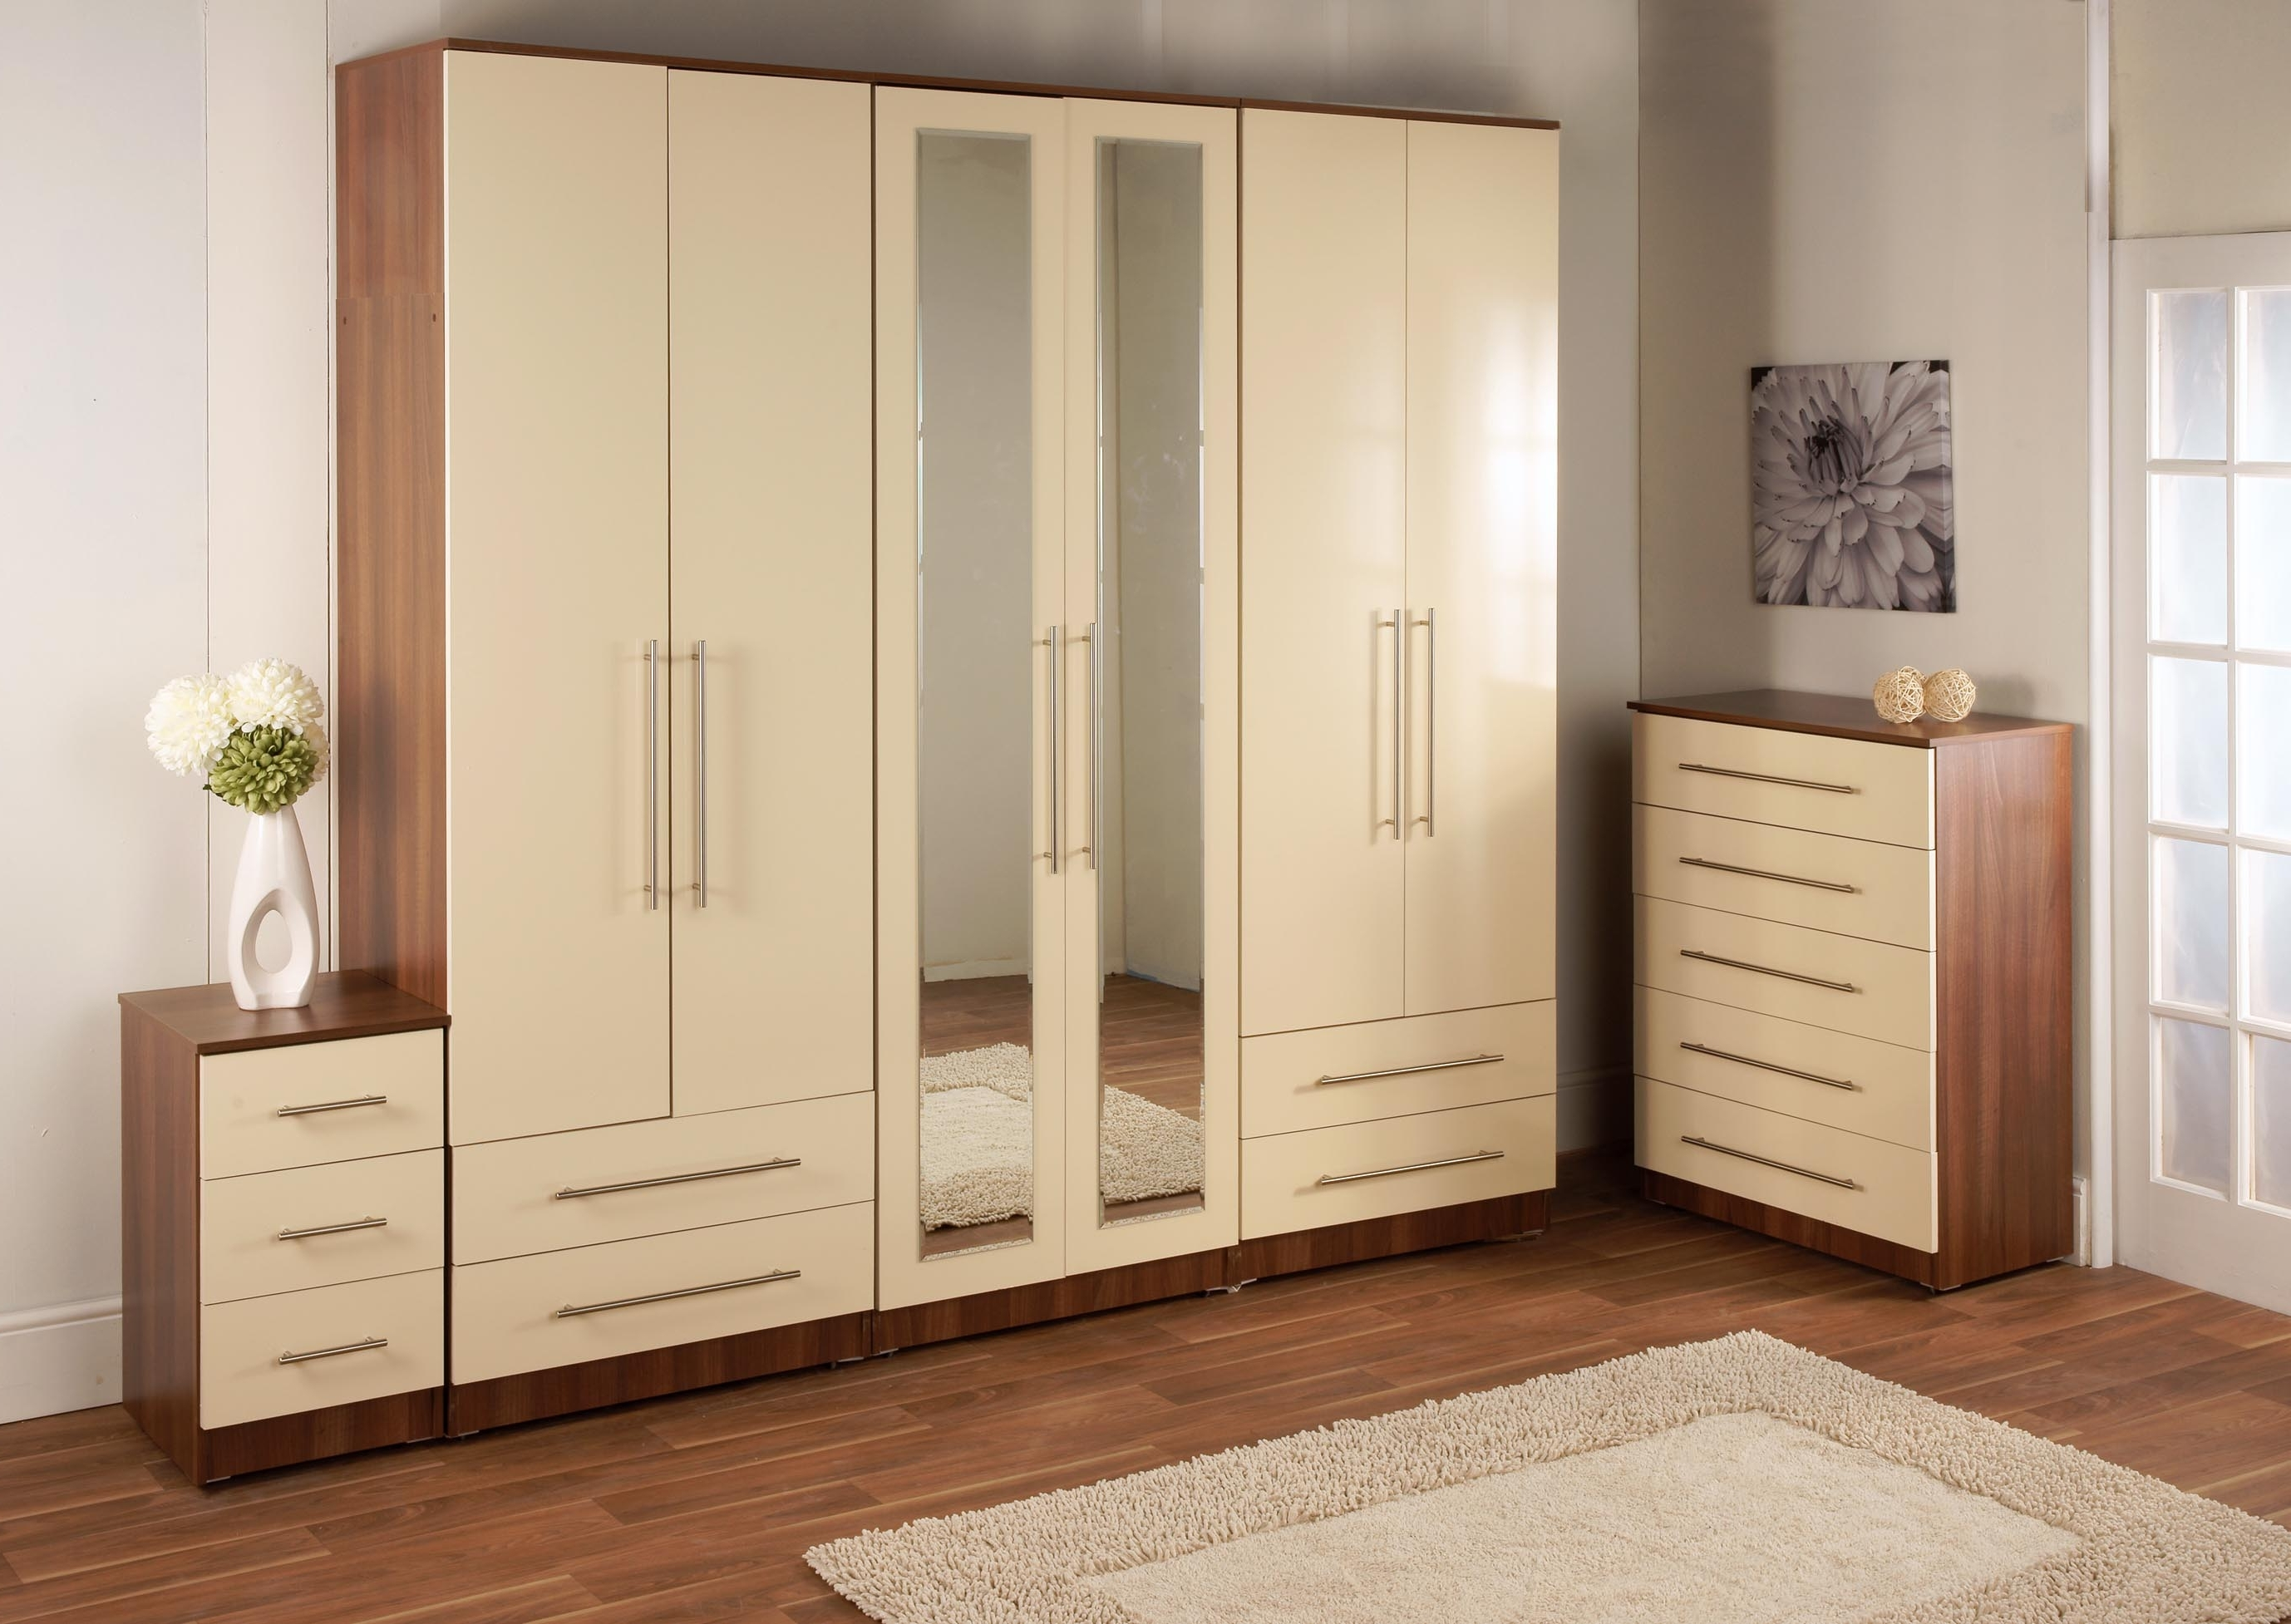 Cheap Wardrobes Sets Intended For Current Bedroom Furniture Wardrobes (View 8 of 15)